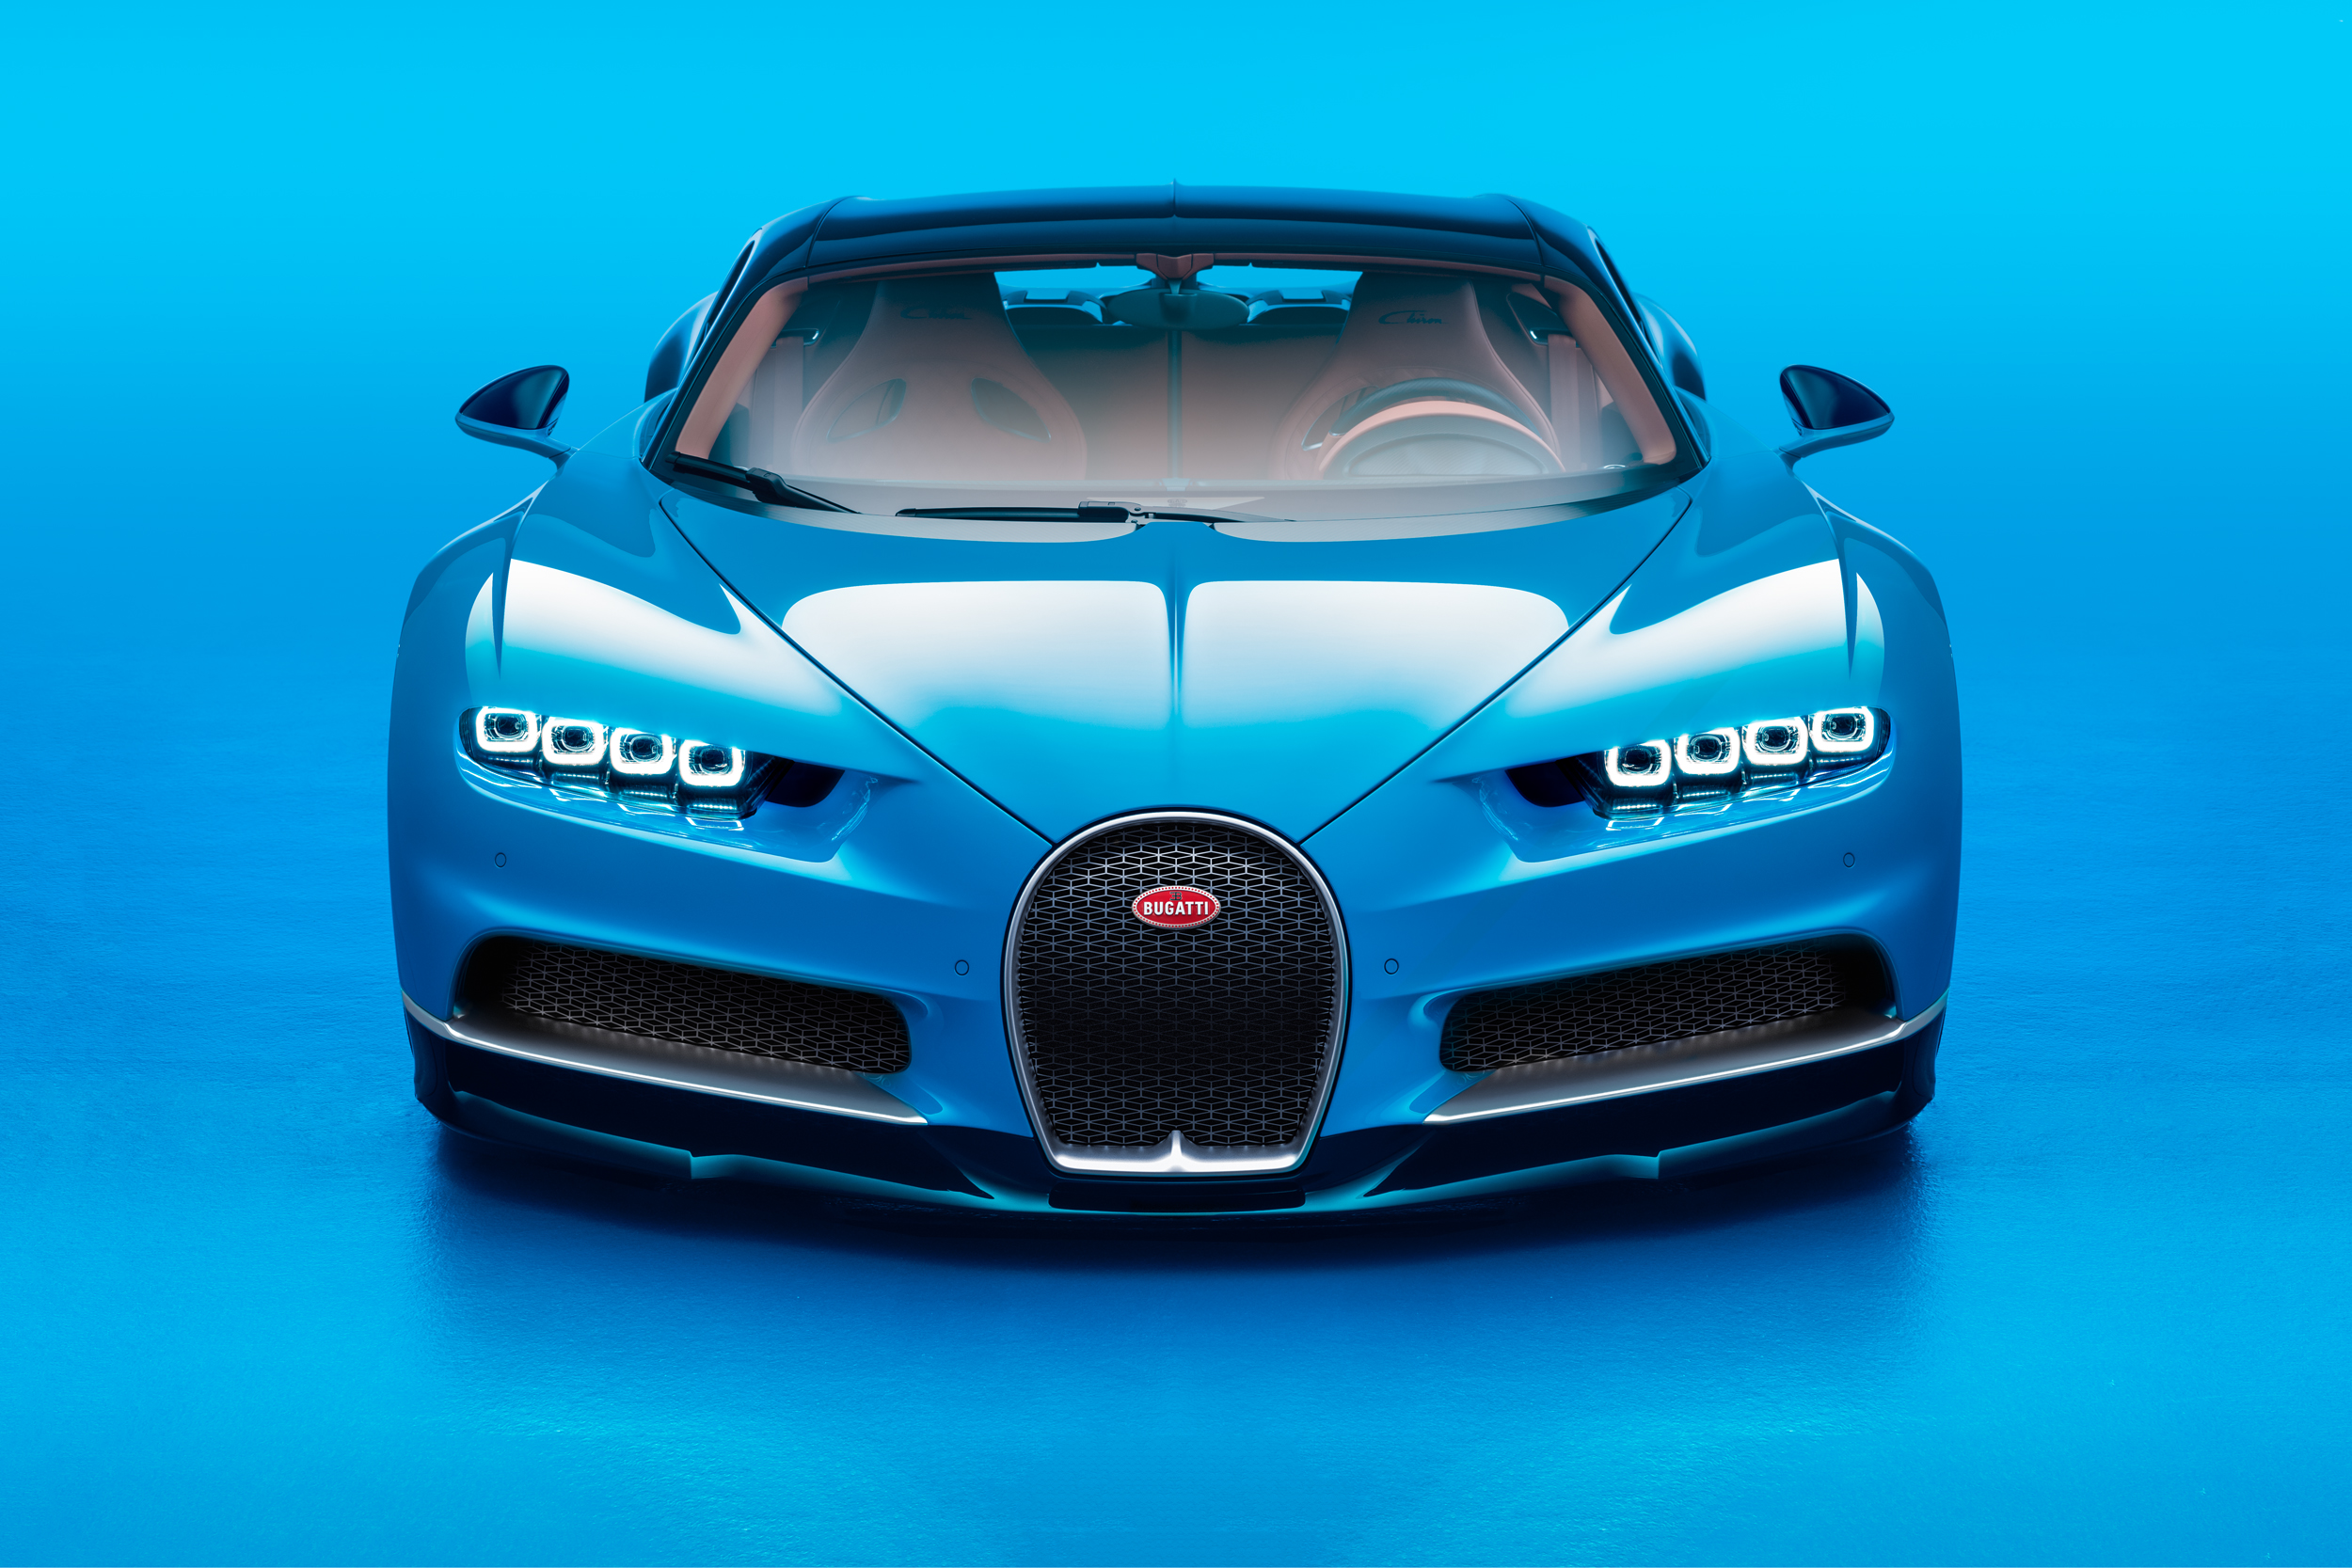 Bugatti S Chiron Is The Beastly Faster Than Fast 1 500hp Veyron Successor